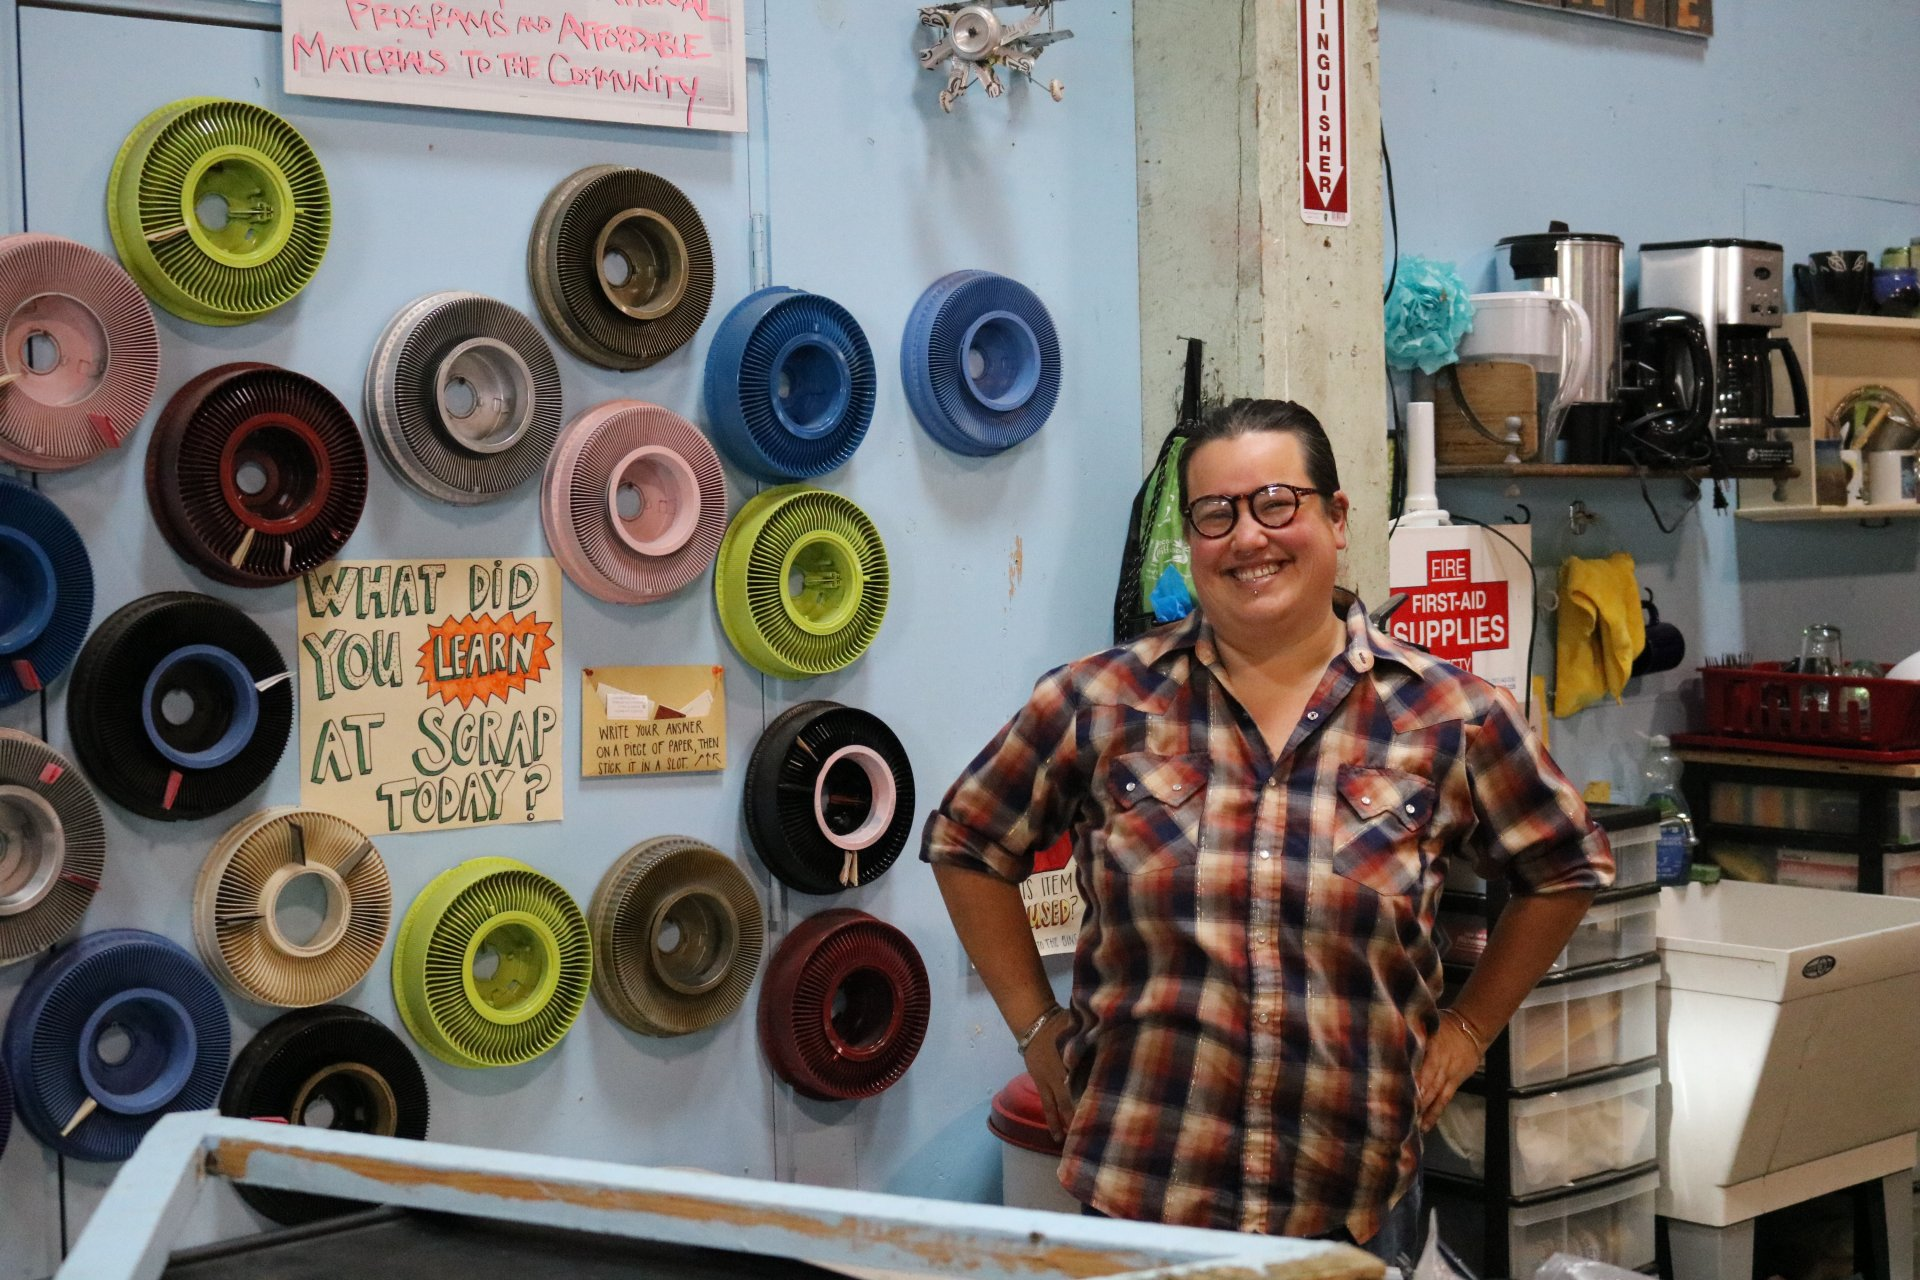 Malia Matsumoto stands surrounded by up-cycled materials in the tutorial area in SCRAP Humboldt in October 2018. | Photo by Chelsea Wood